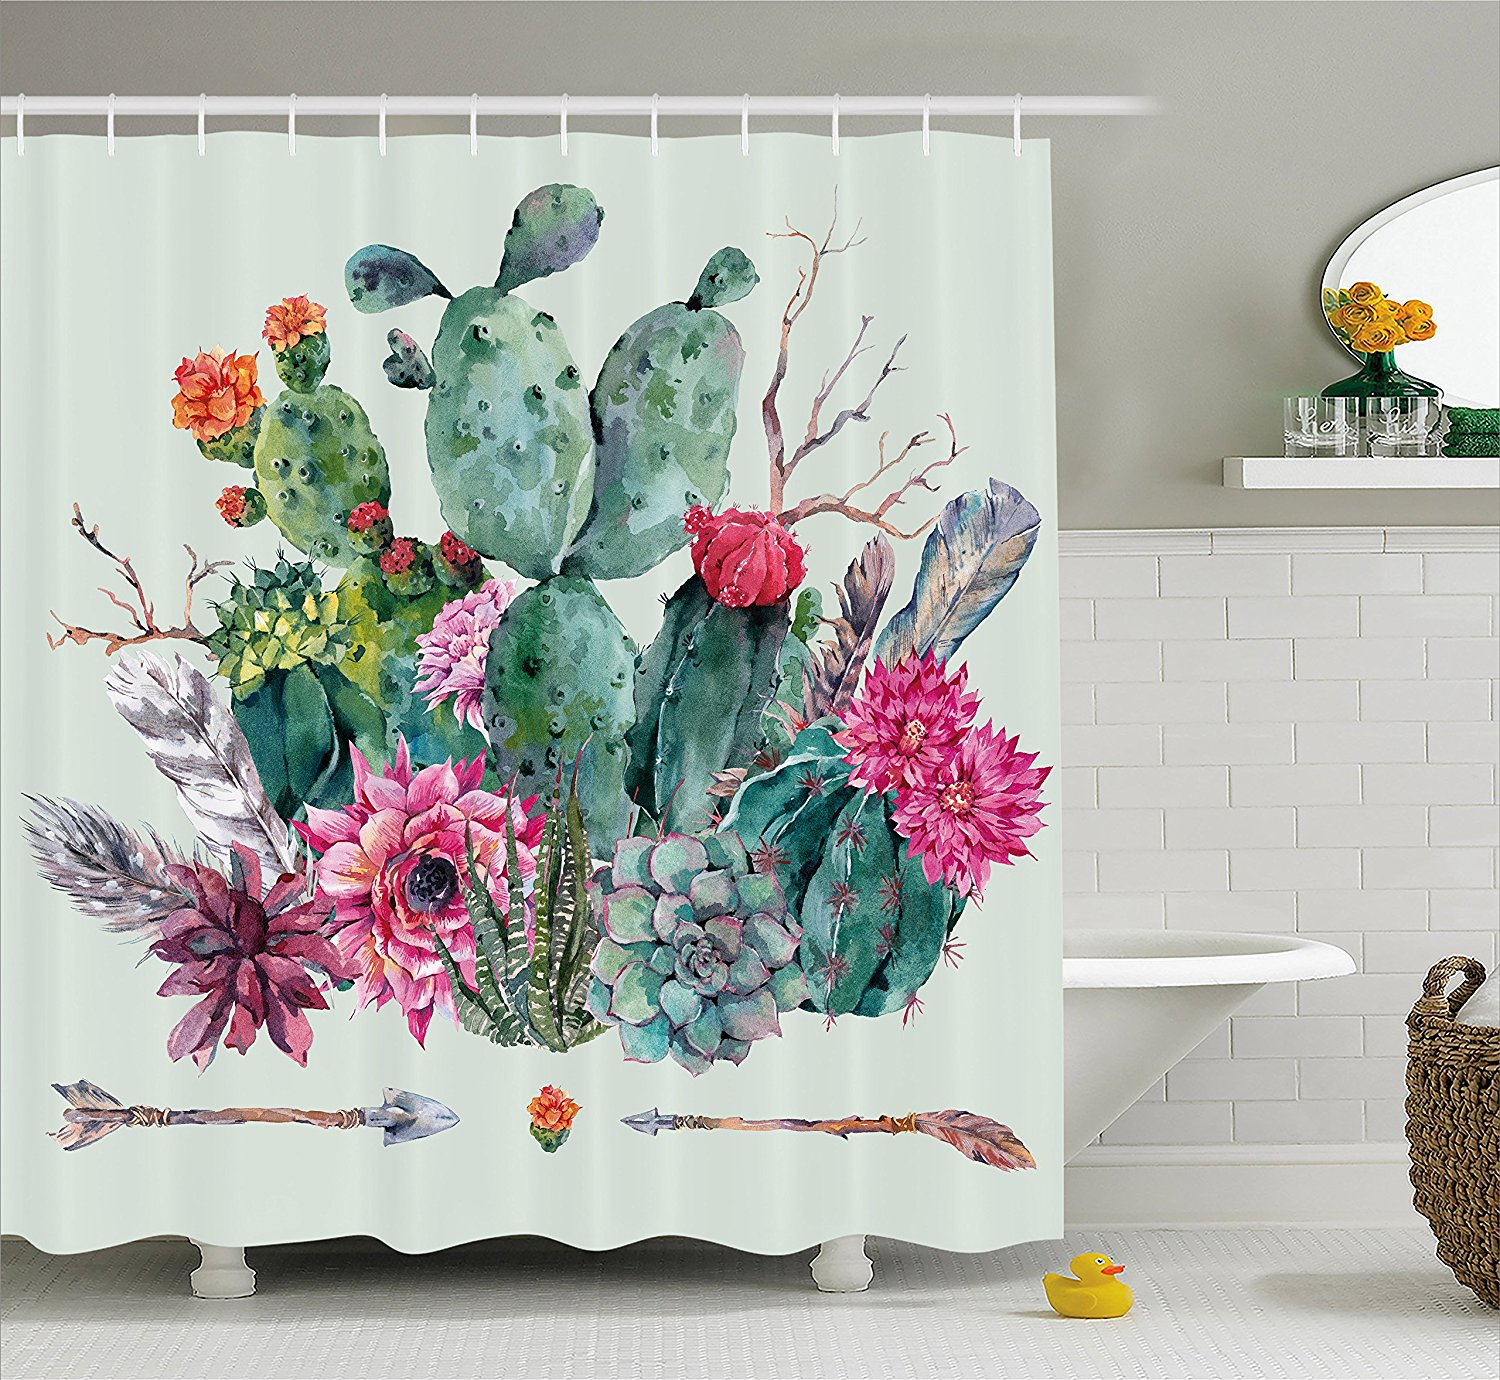 cactus decor shower curtain by spring garden with boho style bouquet of thorny plants blooms arrows feathers fabric bathroom decor set with hooks